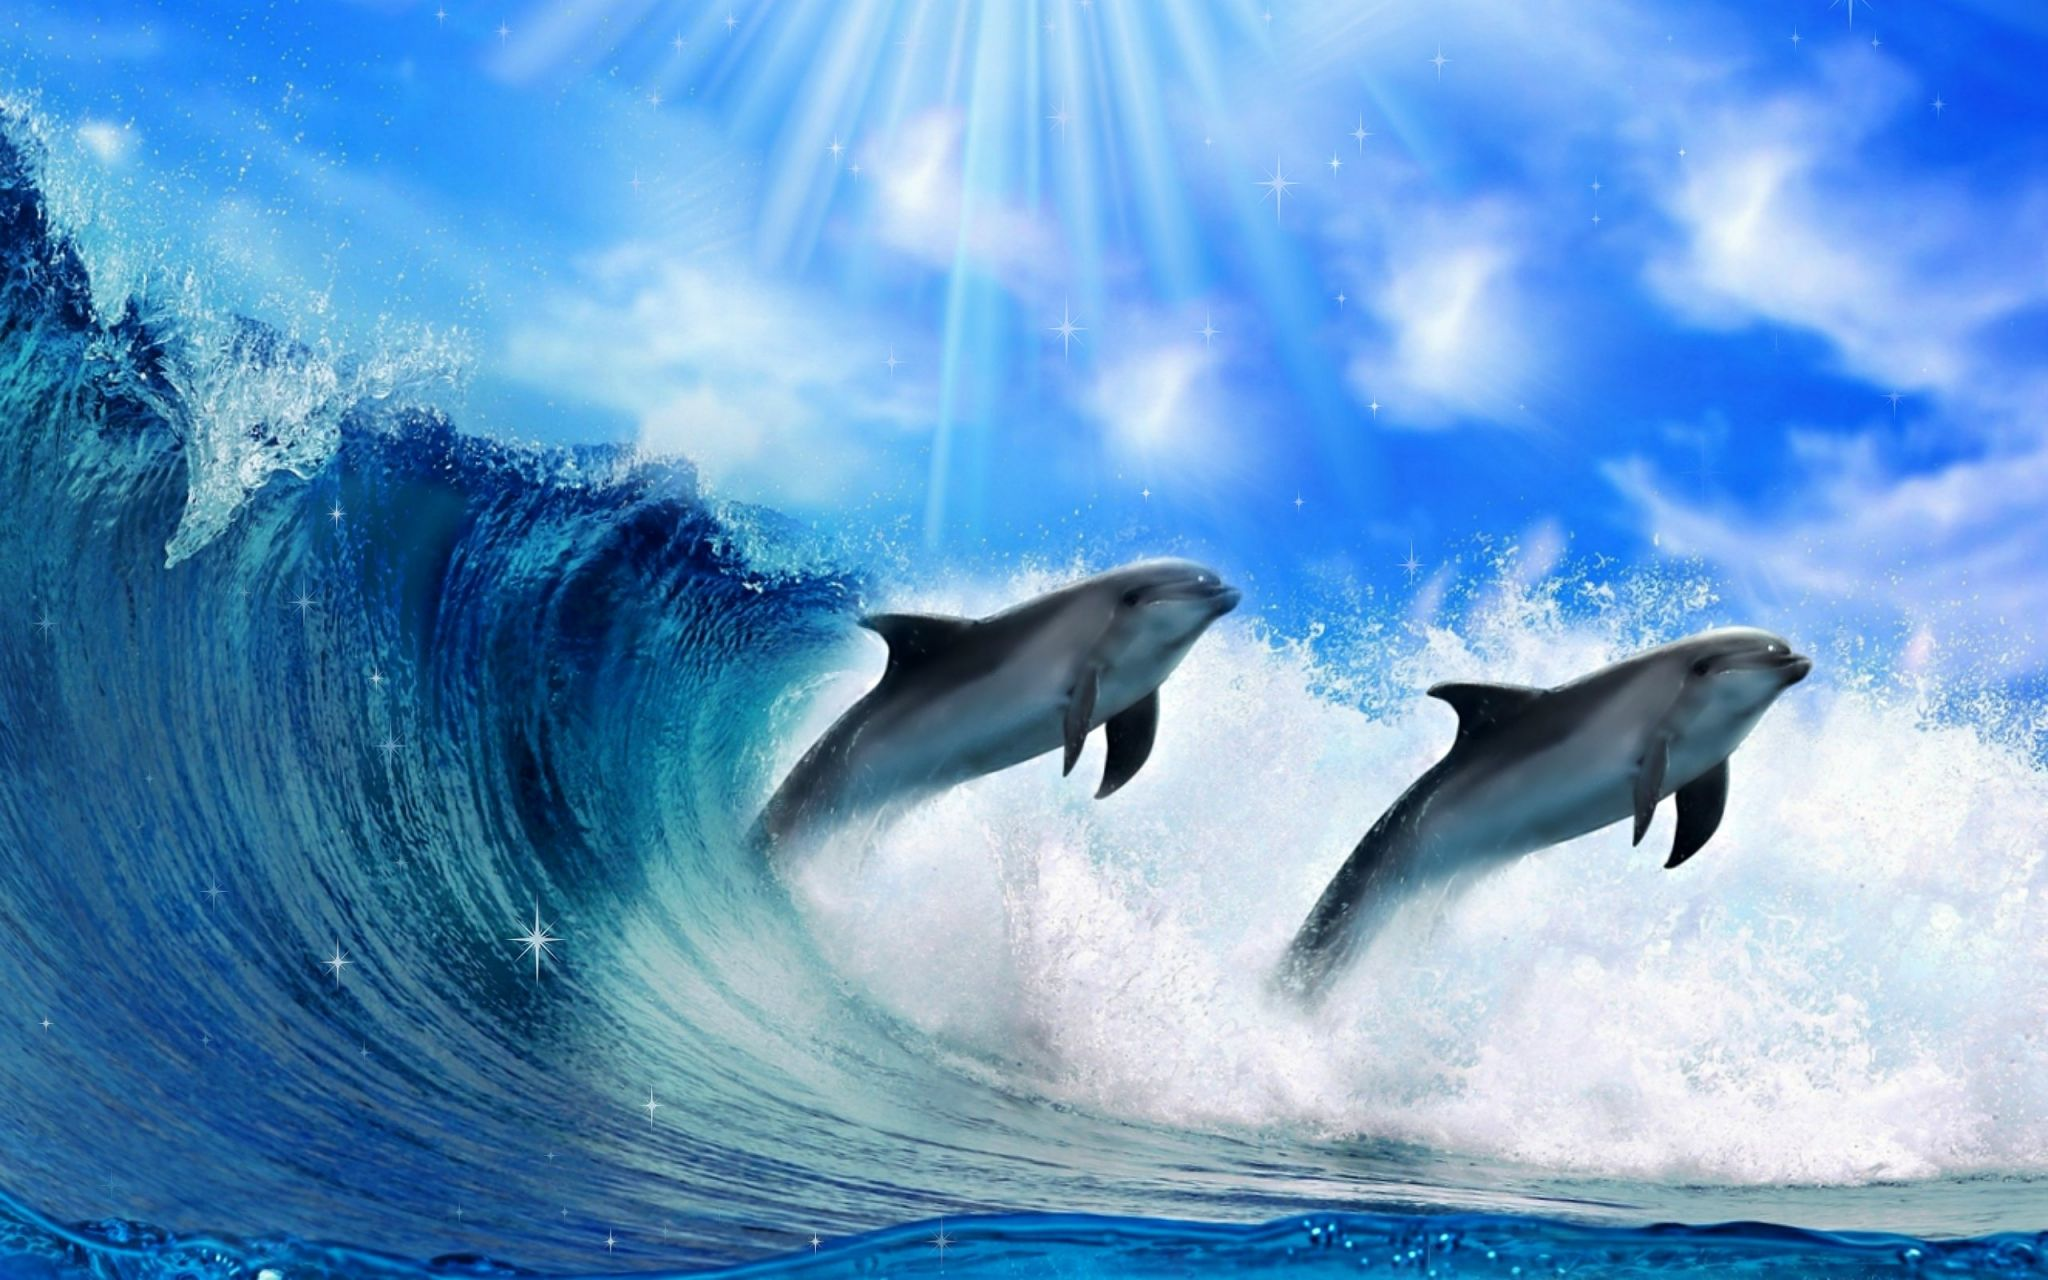 Dolphin Animated Wallpaper Dolphins Animal Underwater Wallpaper Dolphin Hd